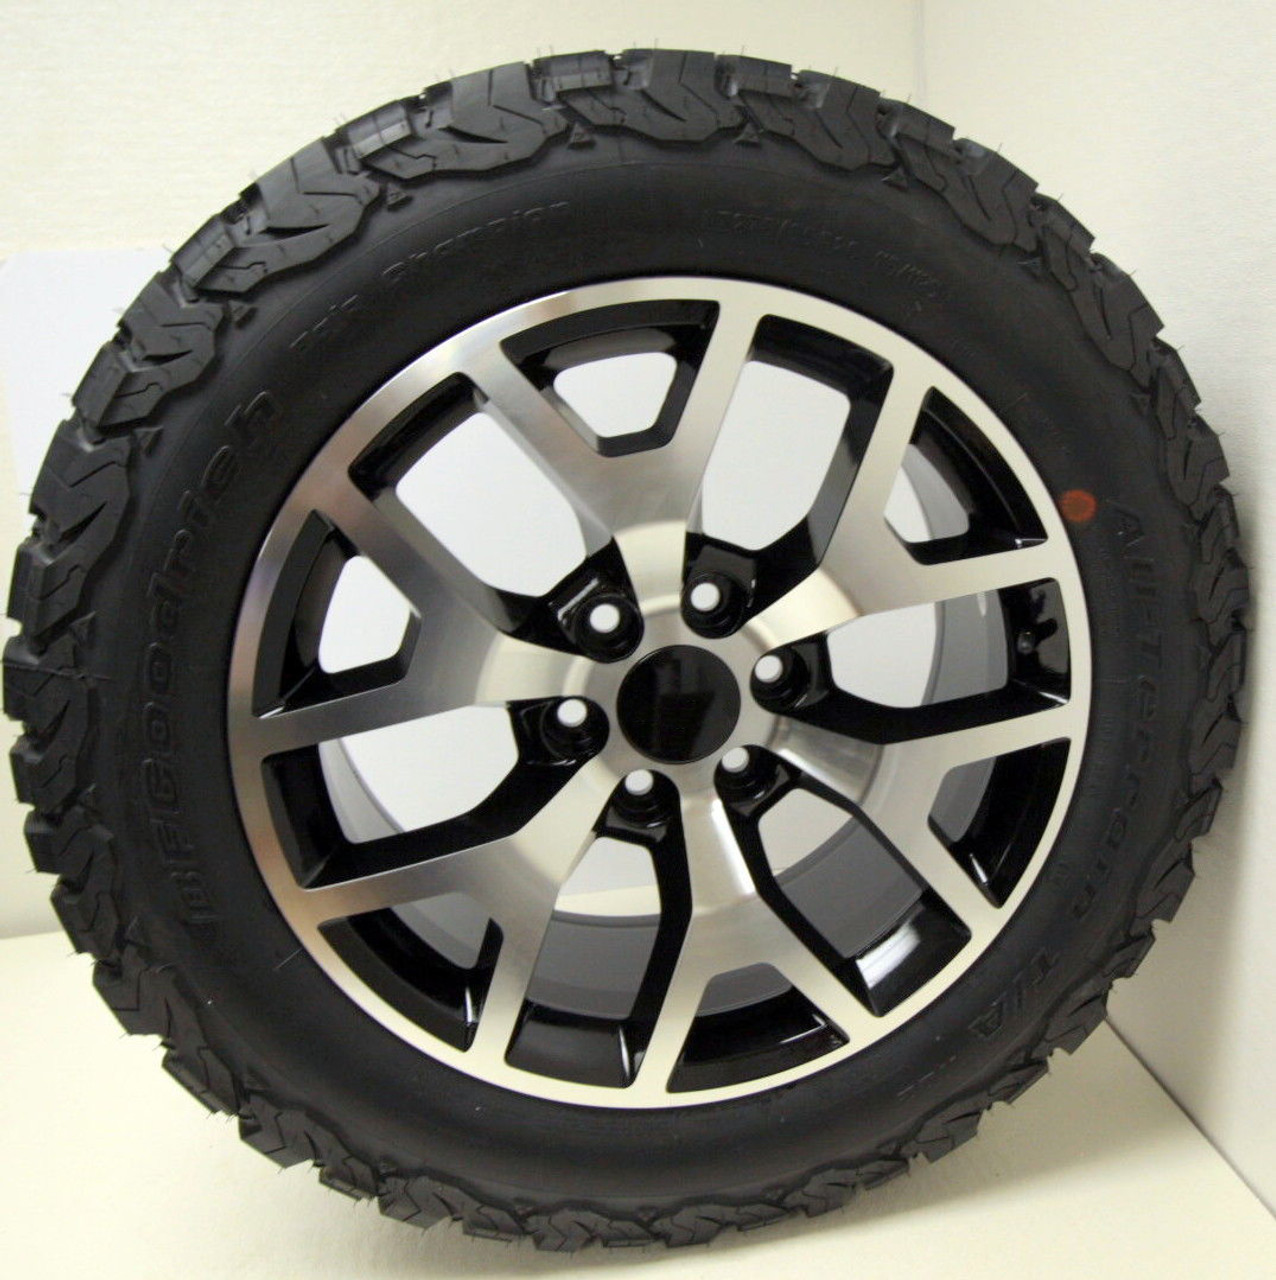 """Black and Machine 20"""" Honeycomb Wheels with BFG KO2 A/T Tires for Chevy Silverado, Tahoe, Suburban - New Set of 4"""